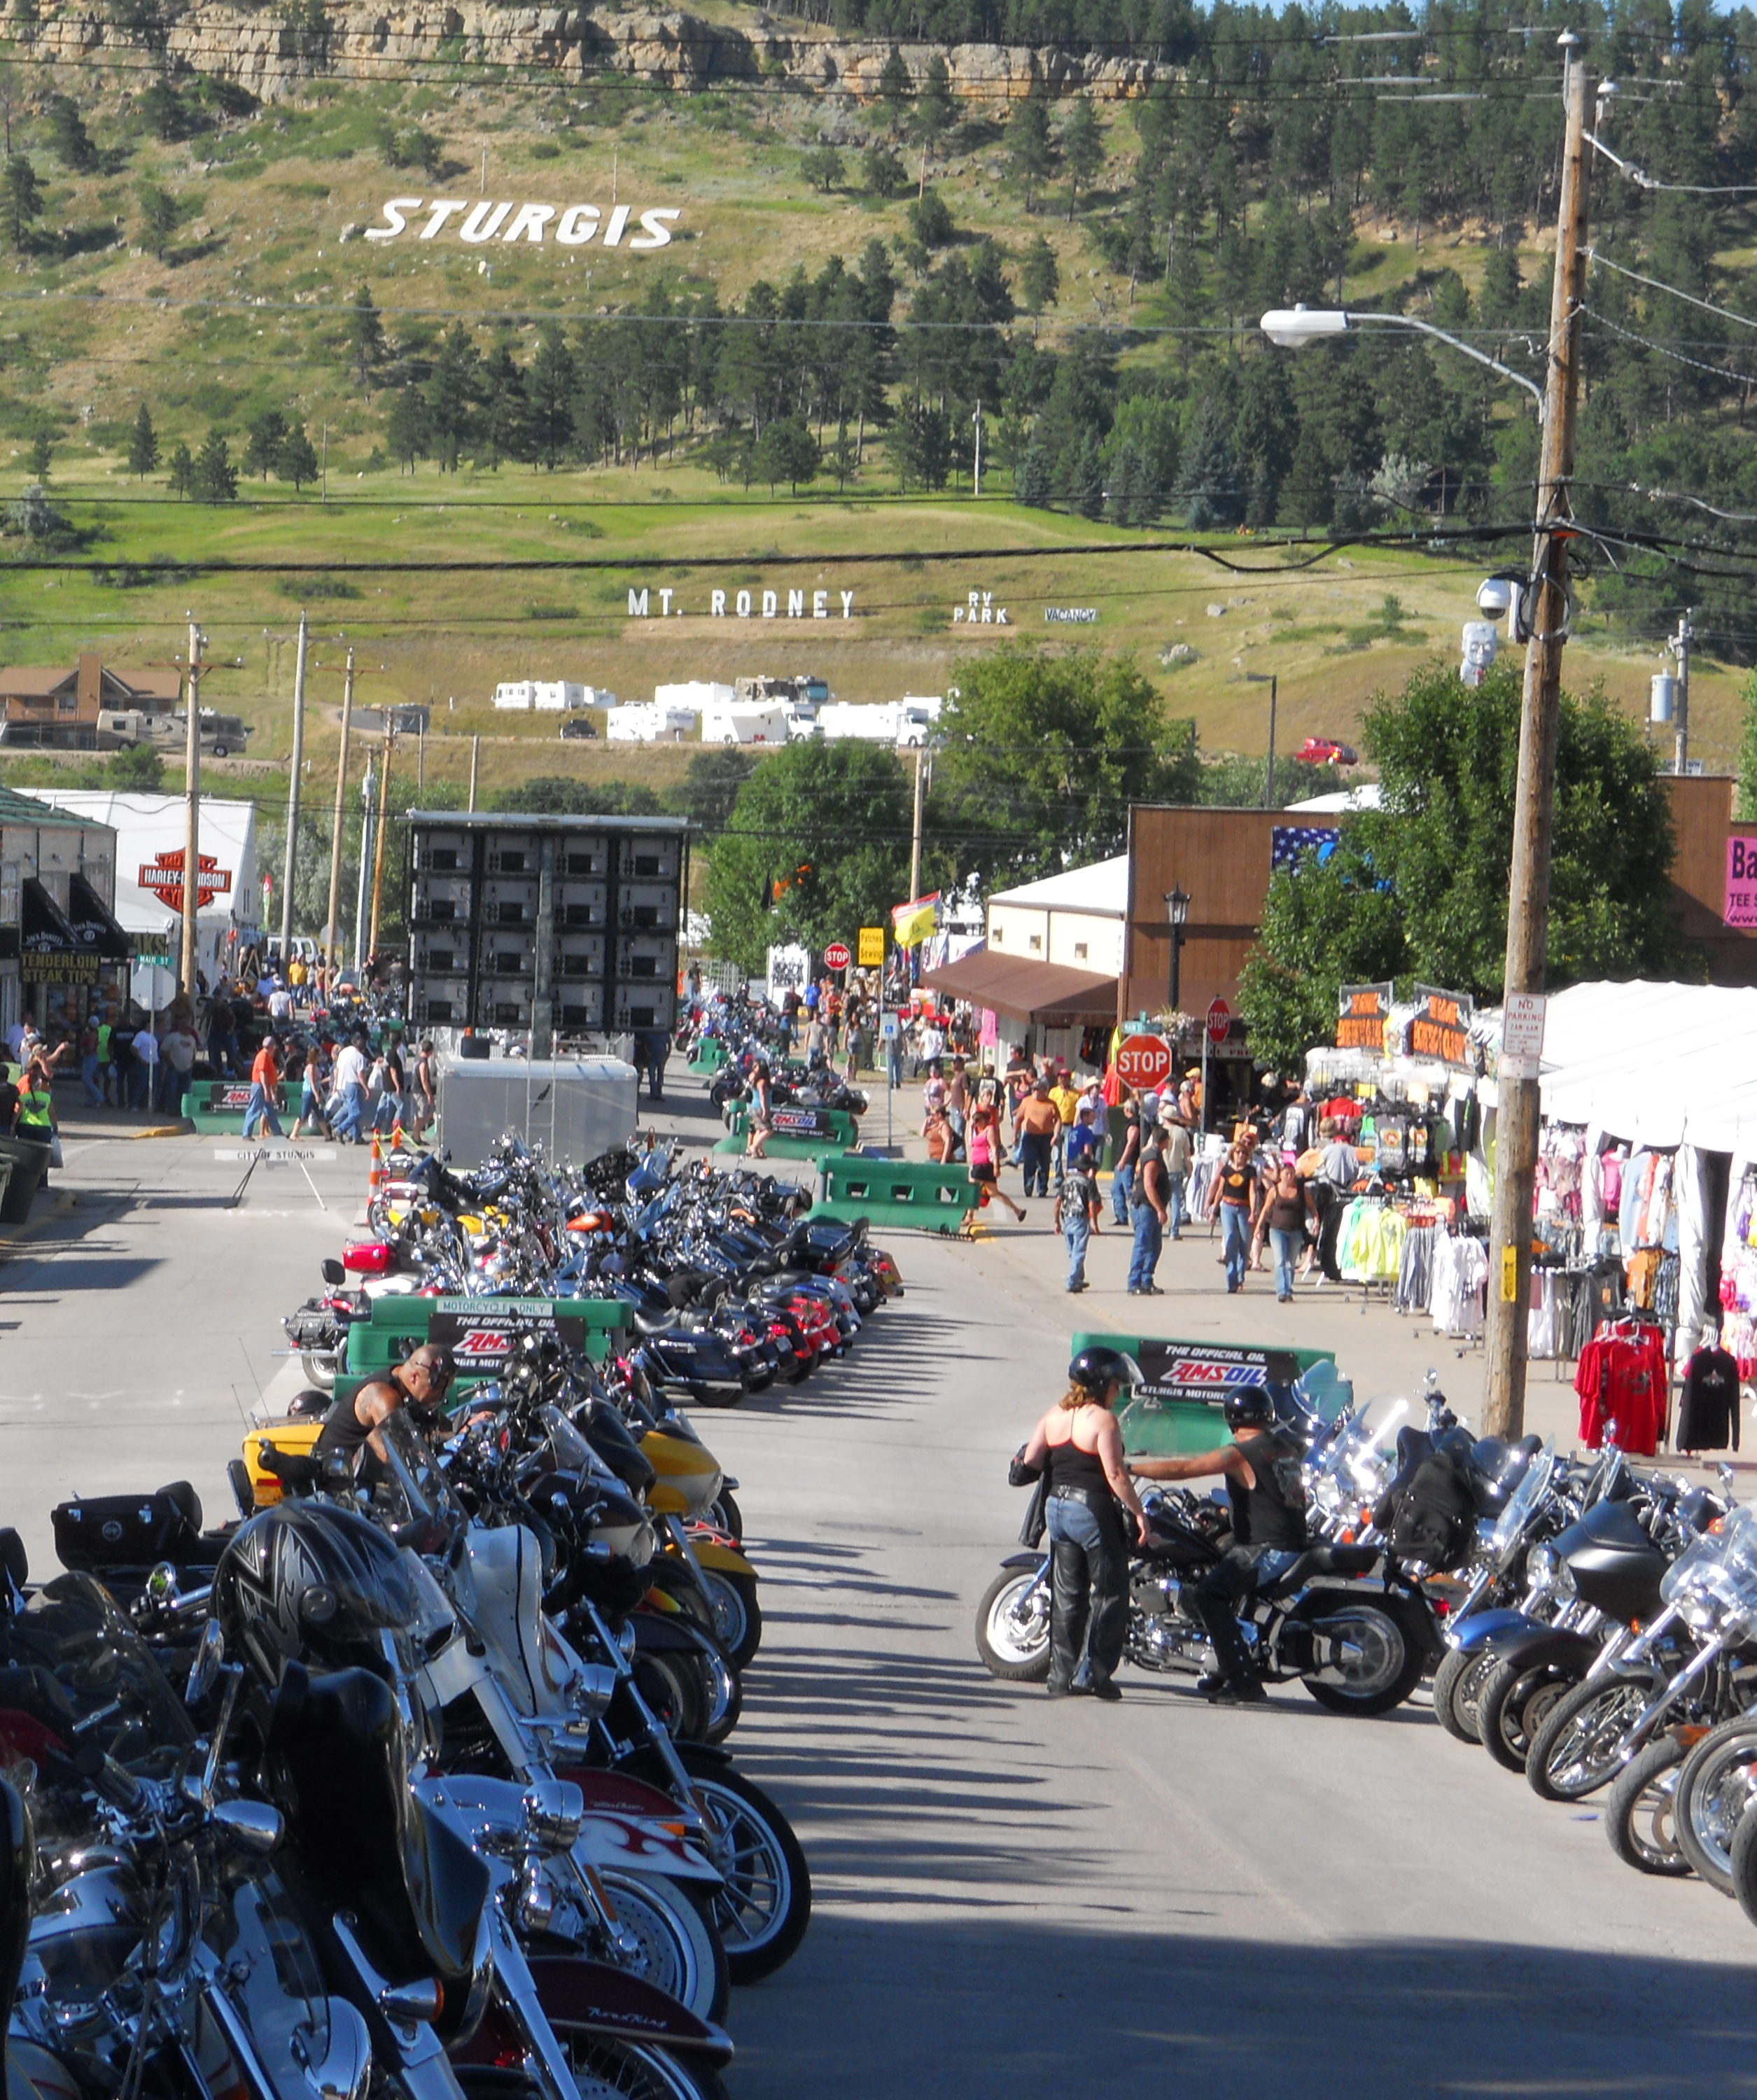 Sturgis Motorcycle Rally Sturgis, South Dakota. Row of motorcycles with Stugis sign on hill in distance